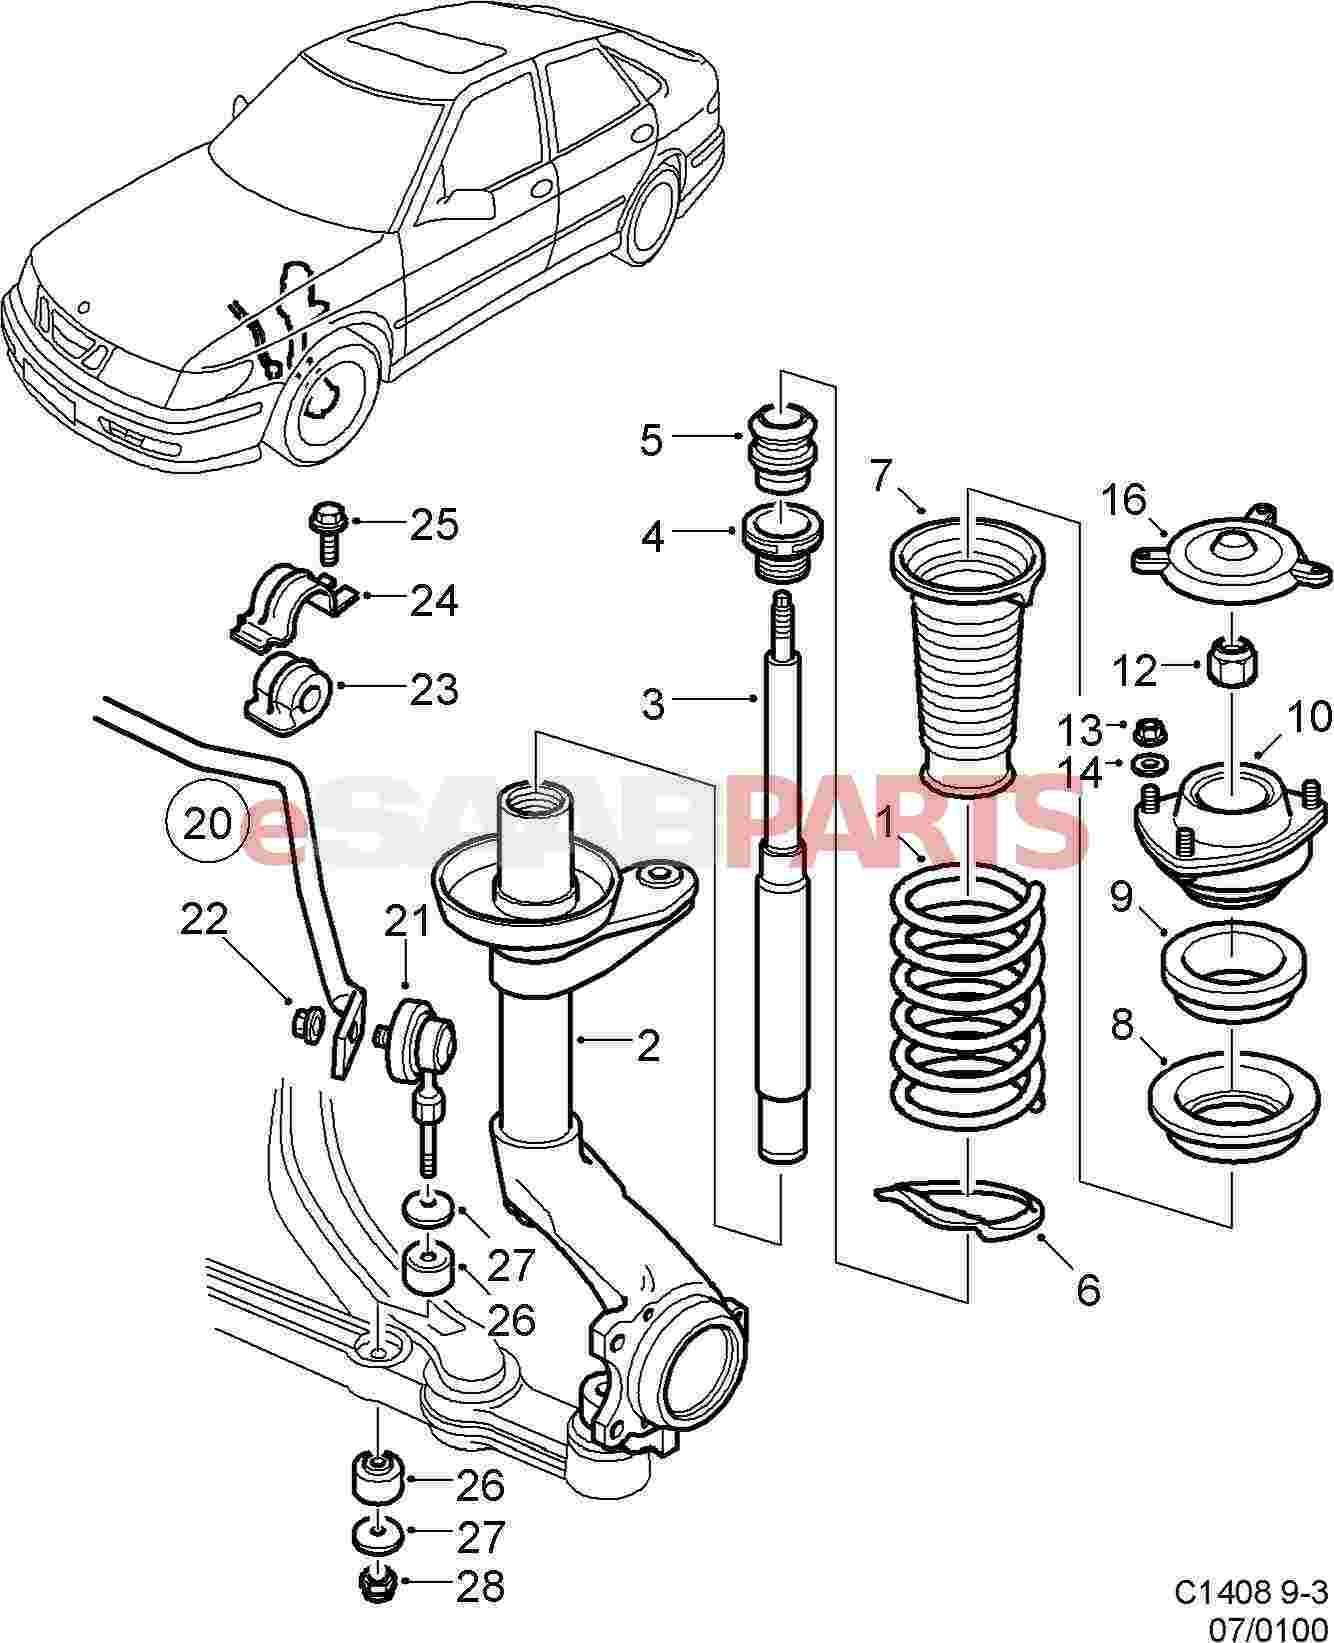 hight resolution of esaabparts com 1999 saab 9 3 parts suspension wheels front suspension front suspension